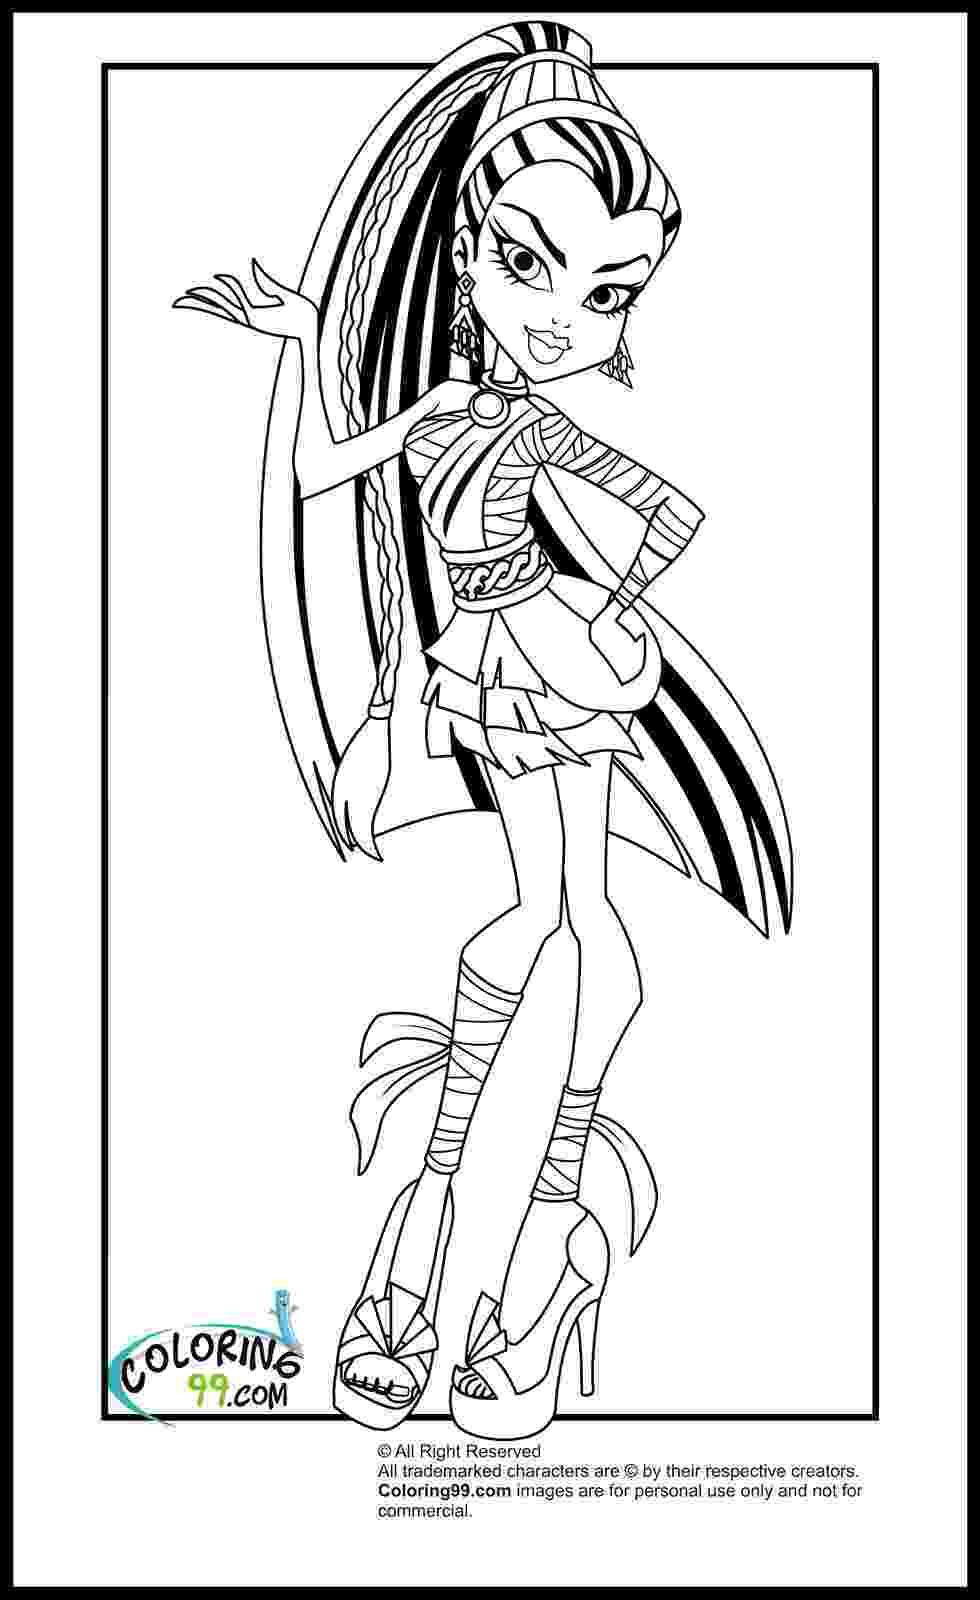 free colouring pages monster high monster high coloring pages team colors monster colouring free high pages